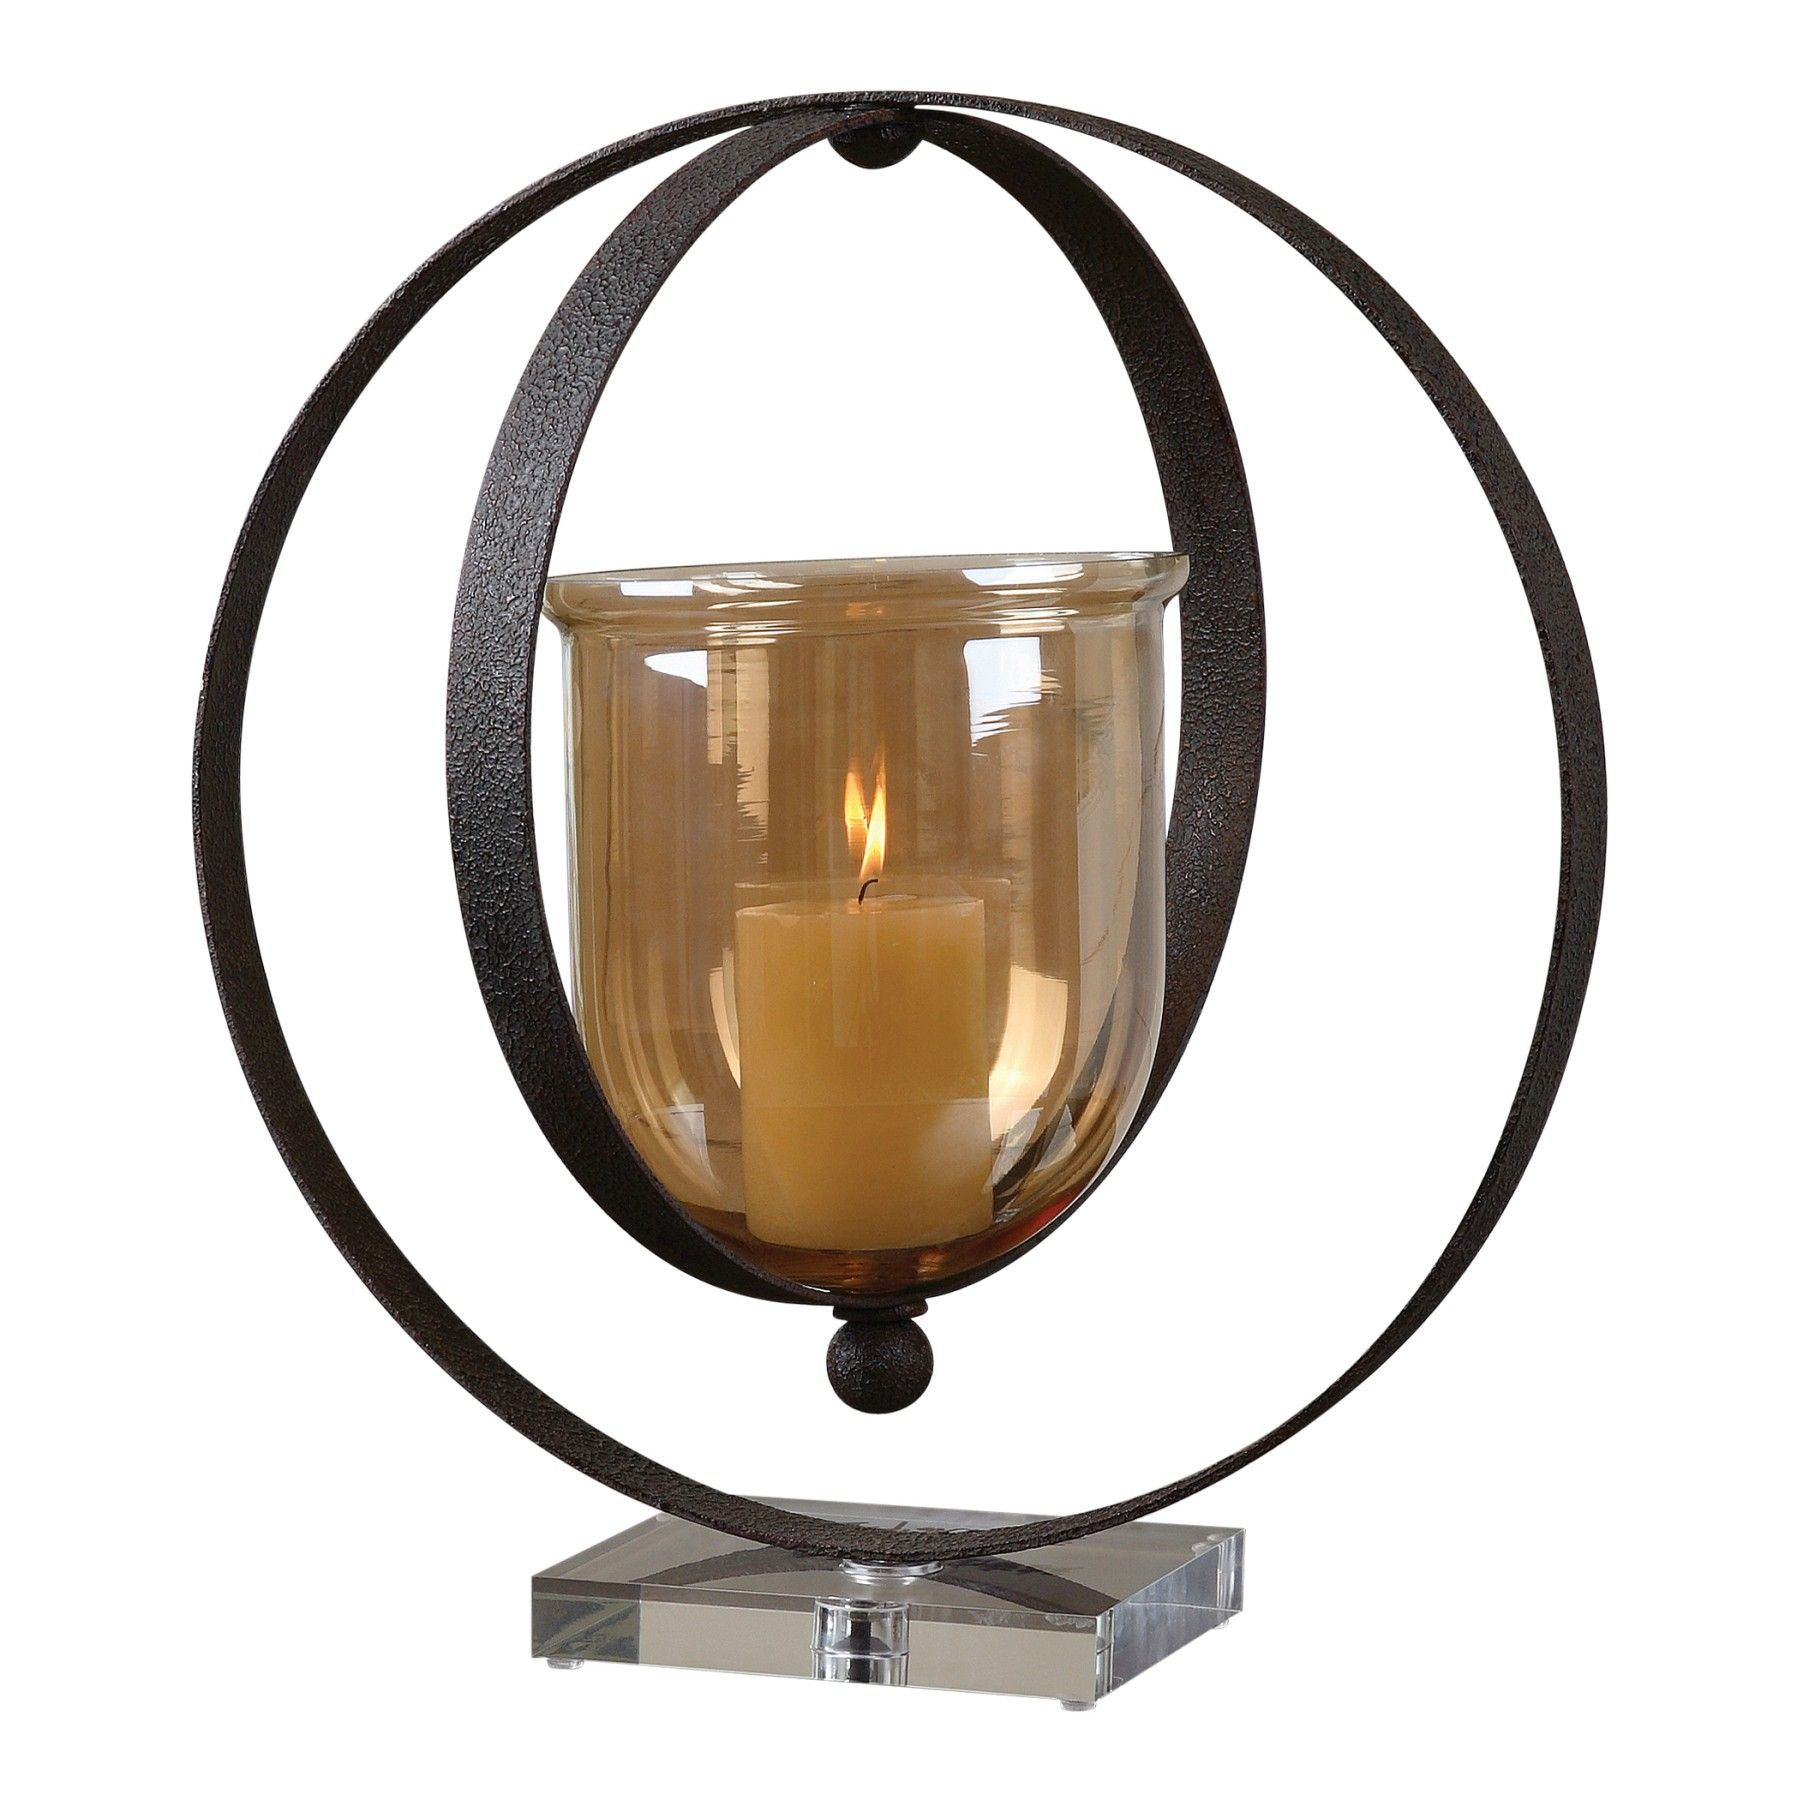 Dark, rust bronze metal rings suspend the transparent amber glass globe; all seated on a crystal base. #uttermost #candles #accessories